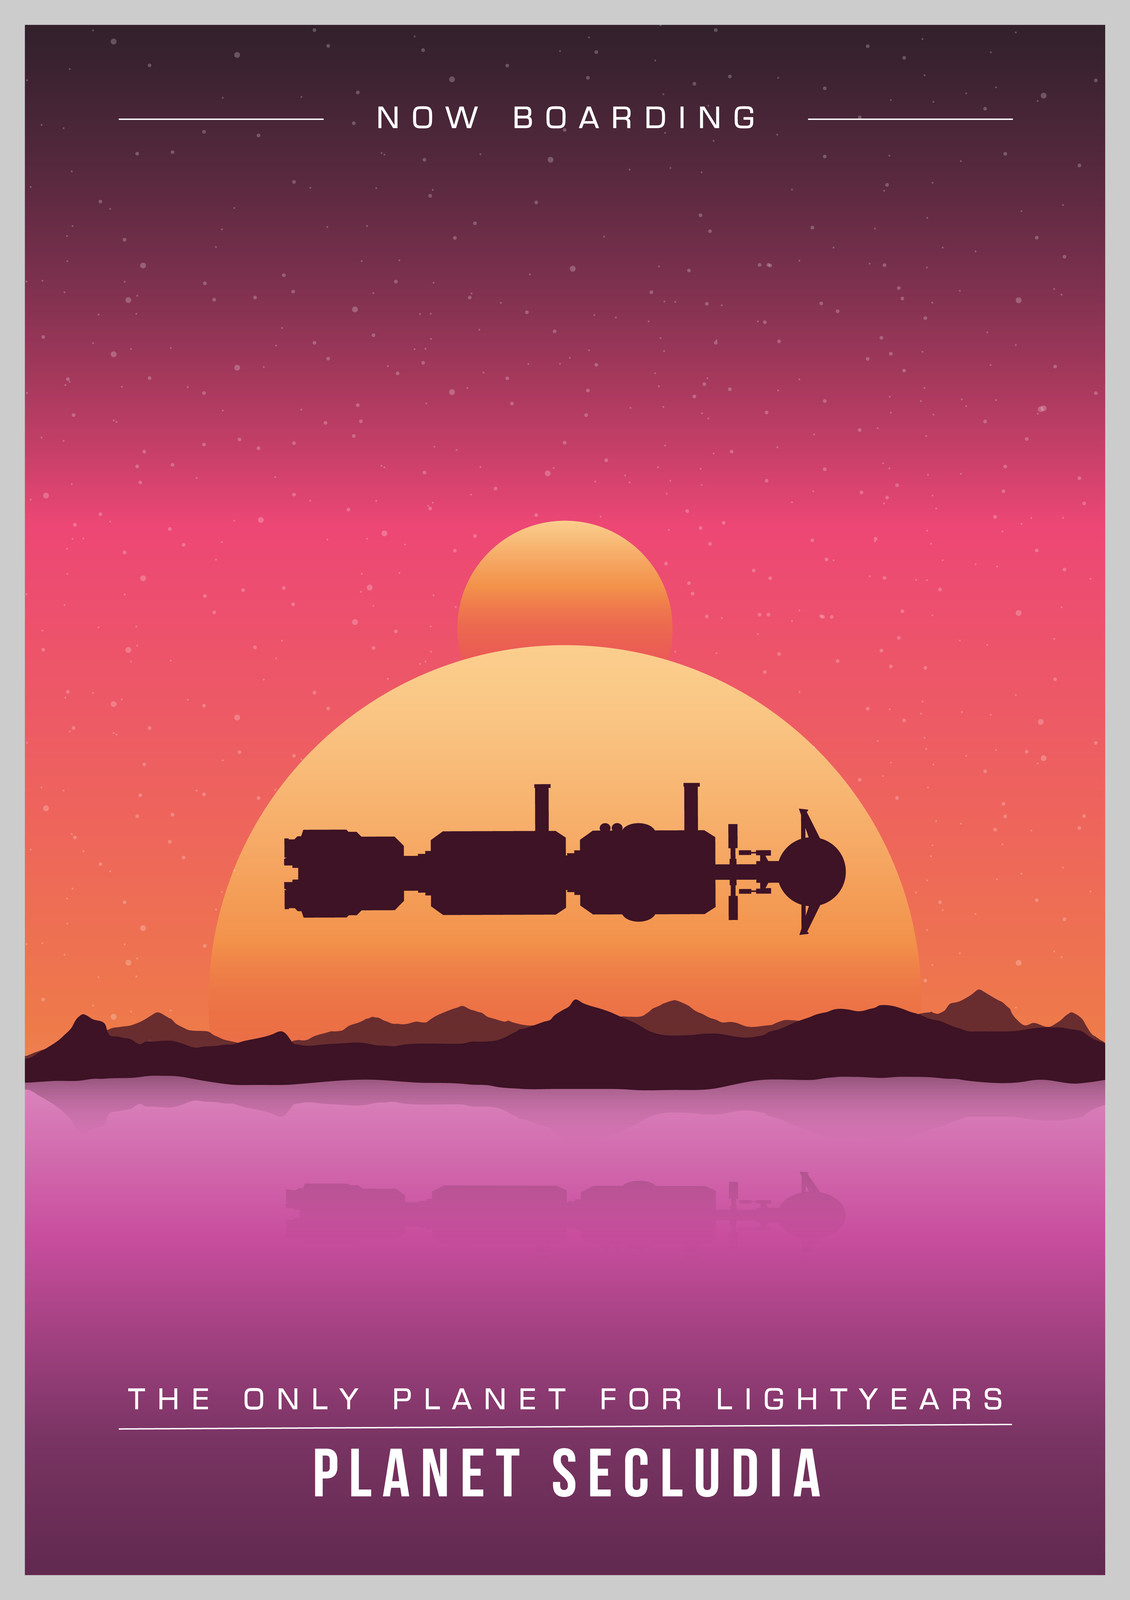 Space age tourism poster - Planet Secludia